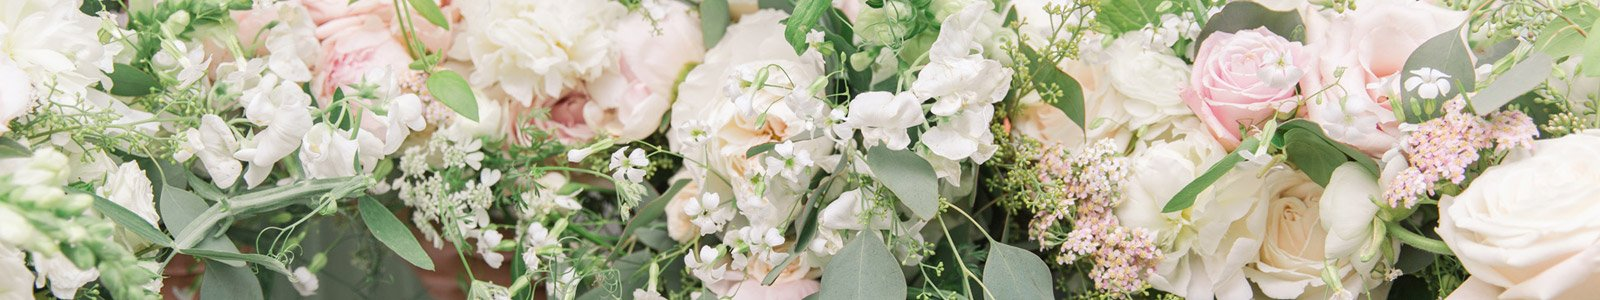 Flower delivery white rock choice image flower decoration ideas fresh blooms white rock florist same day luxury flowers delivery wedding flowers mightylinksfo choice image mightylinksfo